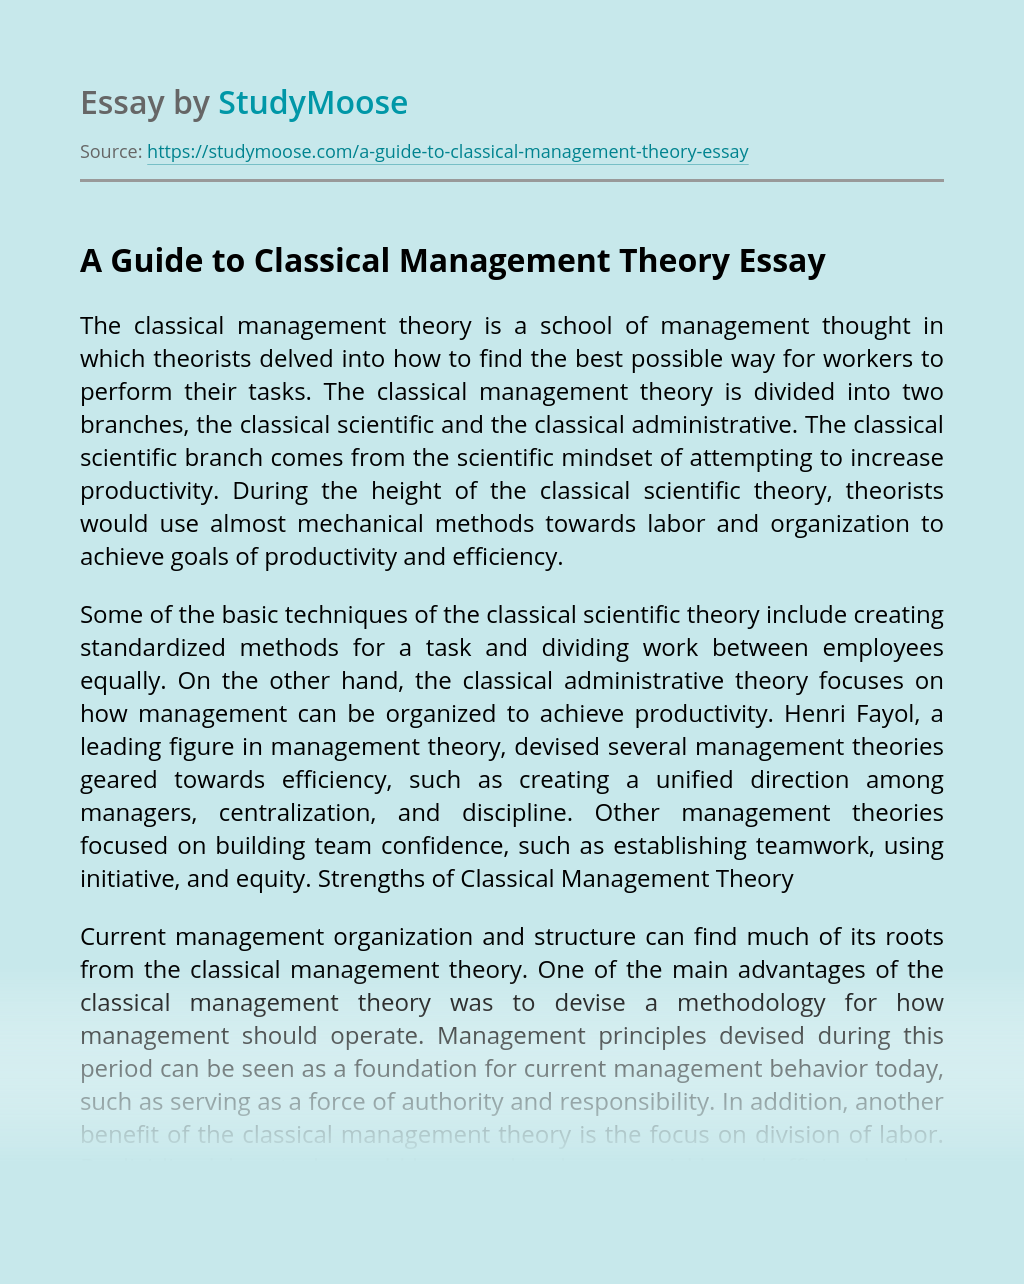 A Guide to Classical Management Theory